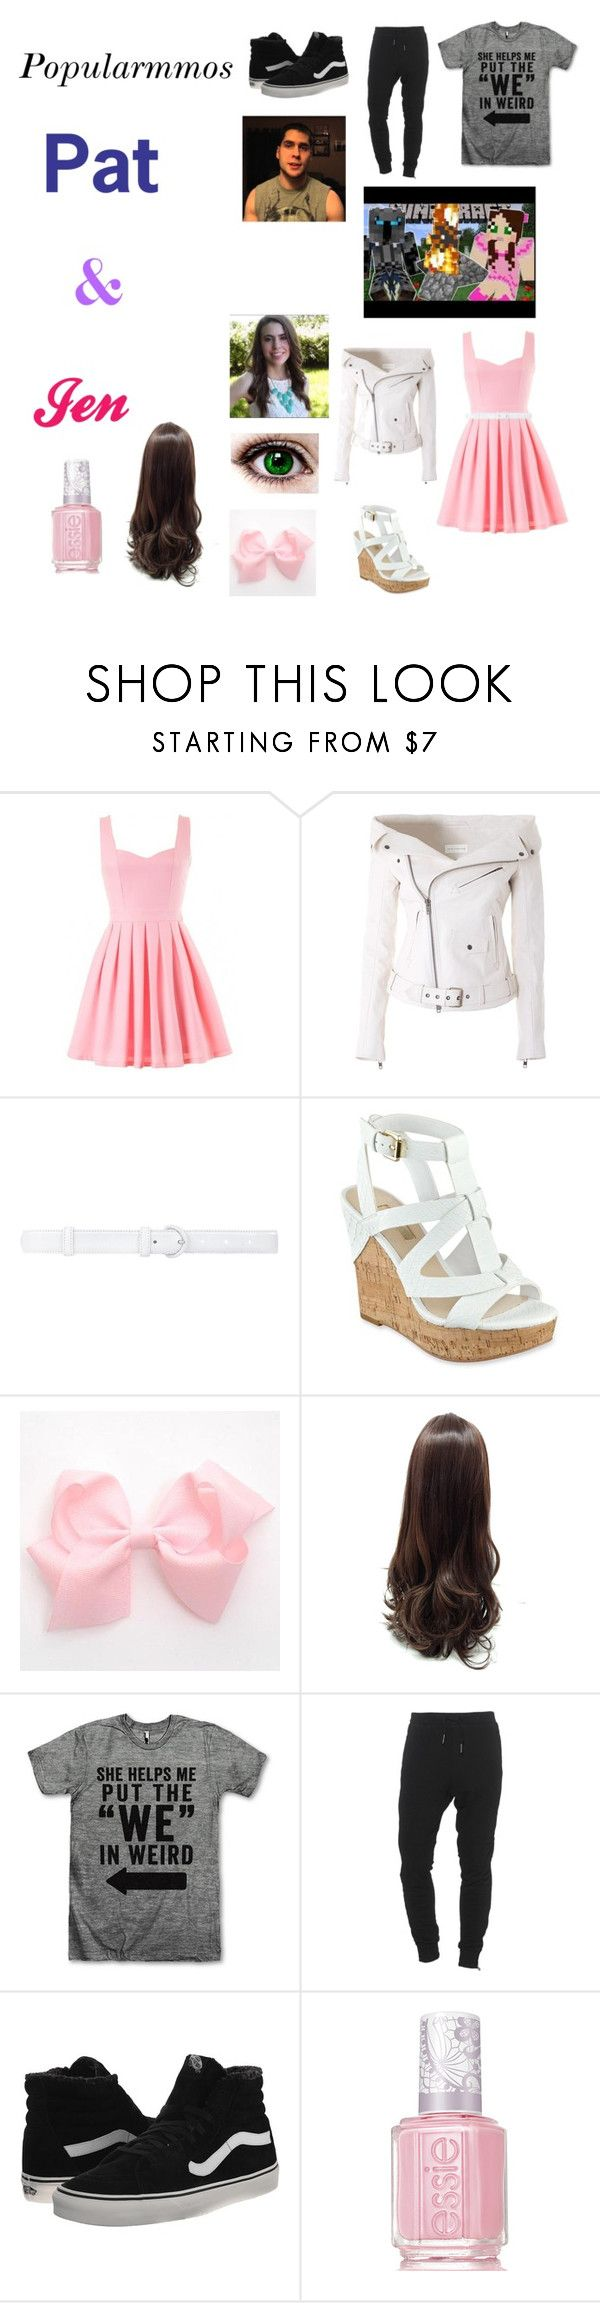 """Pat and Jen~ Popularmmos"" by fashion-anime-animals-reading ❤ liked on Polyvore featuring Faith Connexion, Oscar de la Renta, GUESS, True Religion, Vans and Essie"